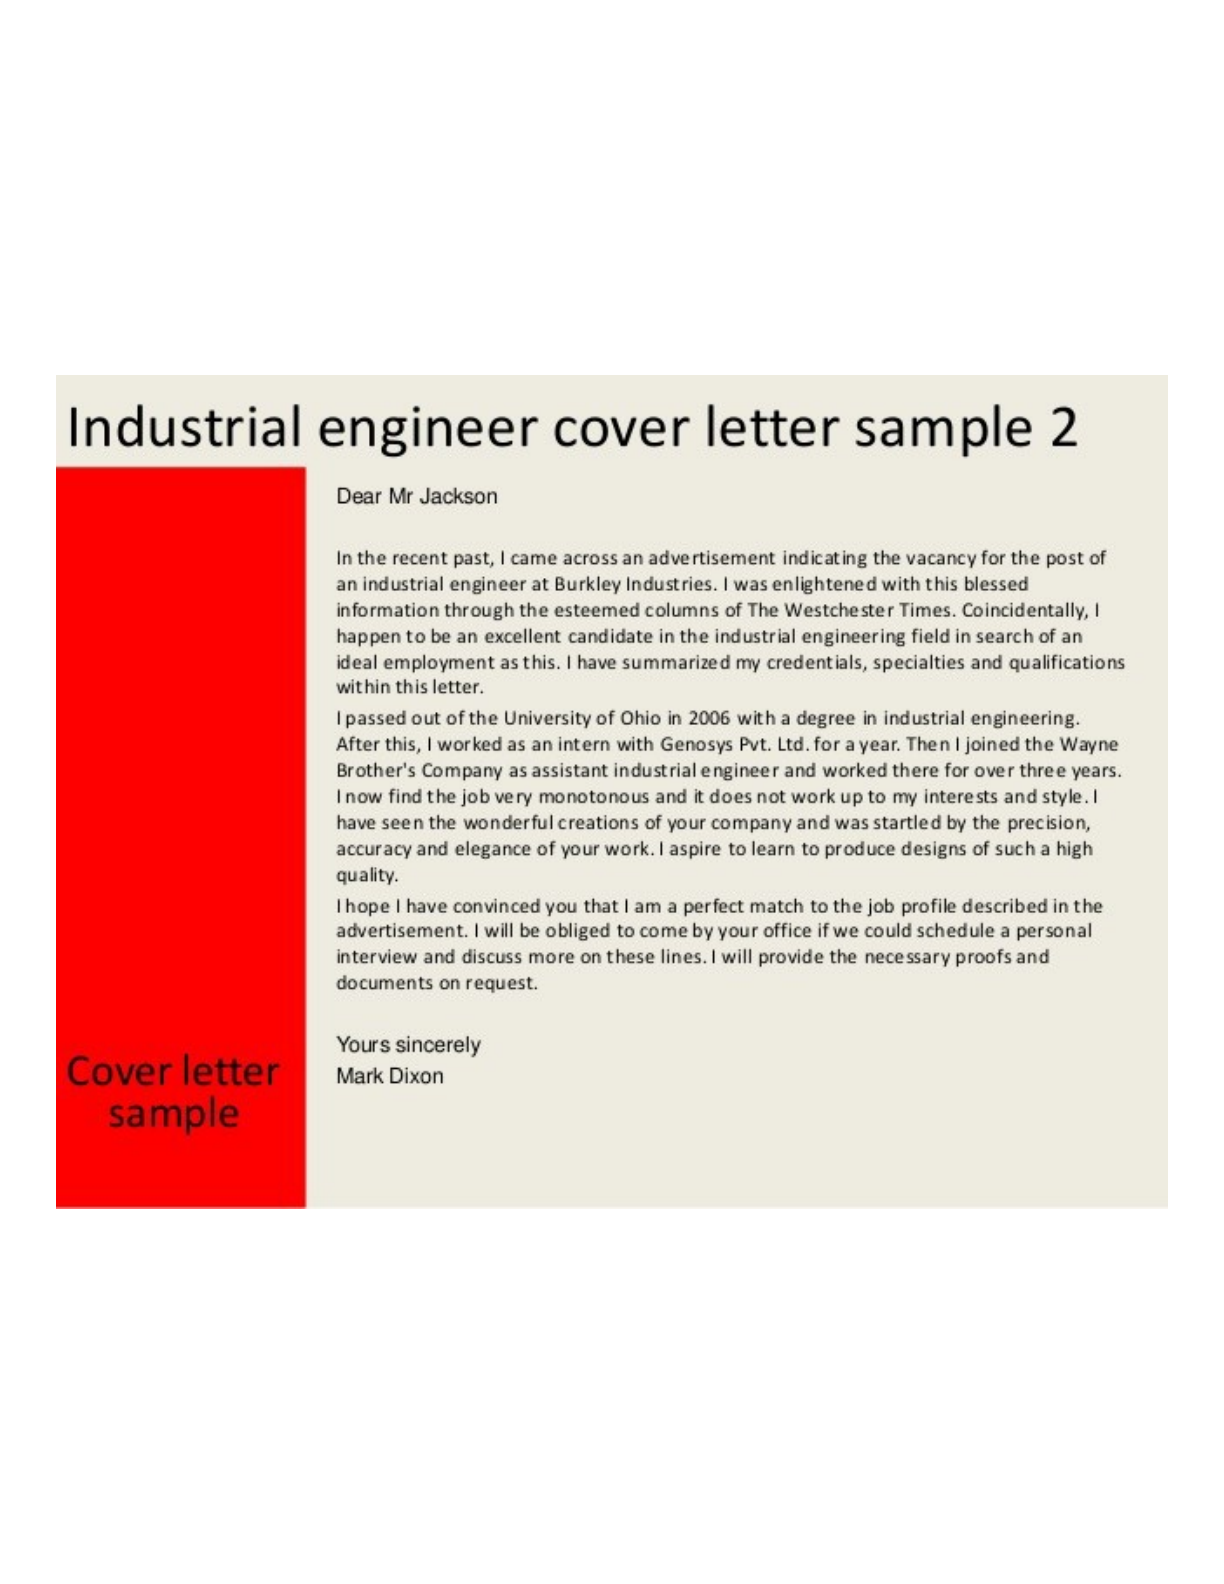 Industrial engineering cover letter samples and templates page spiritdancerdesigns